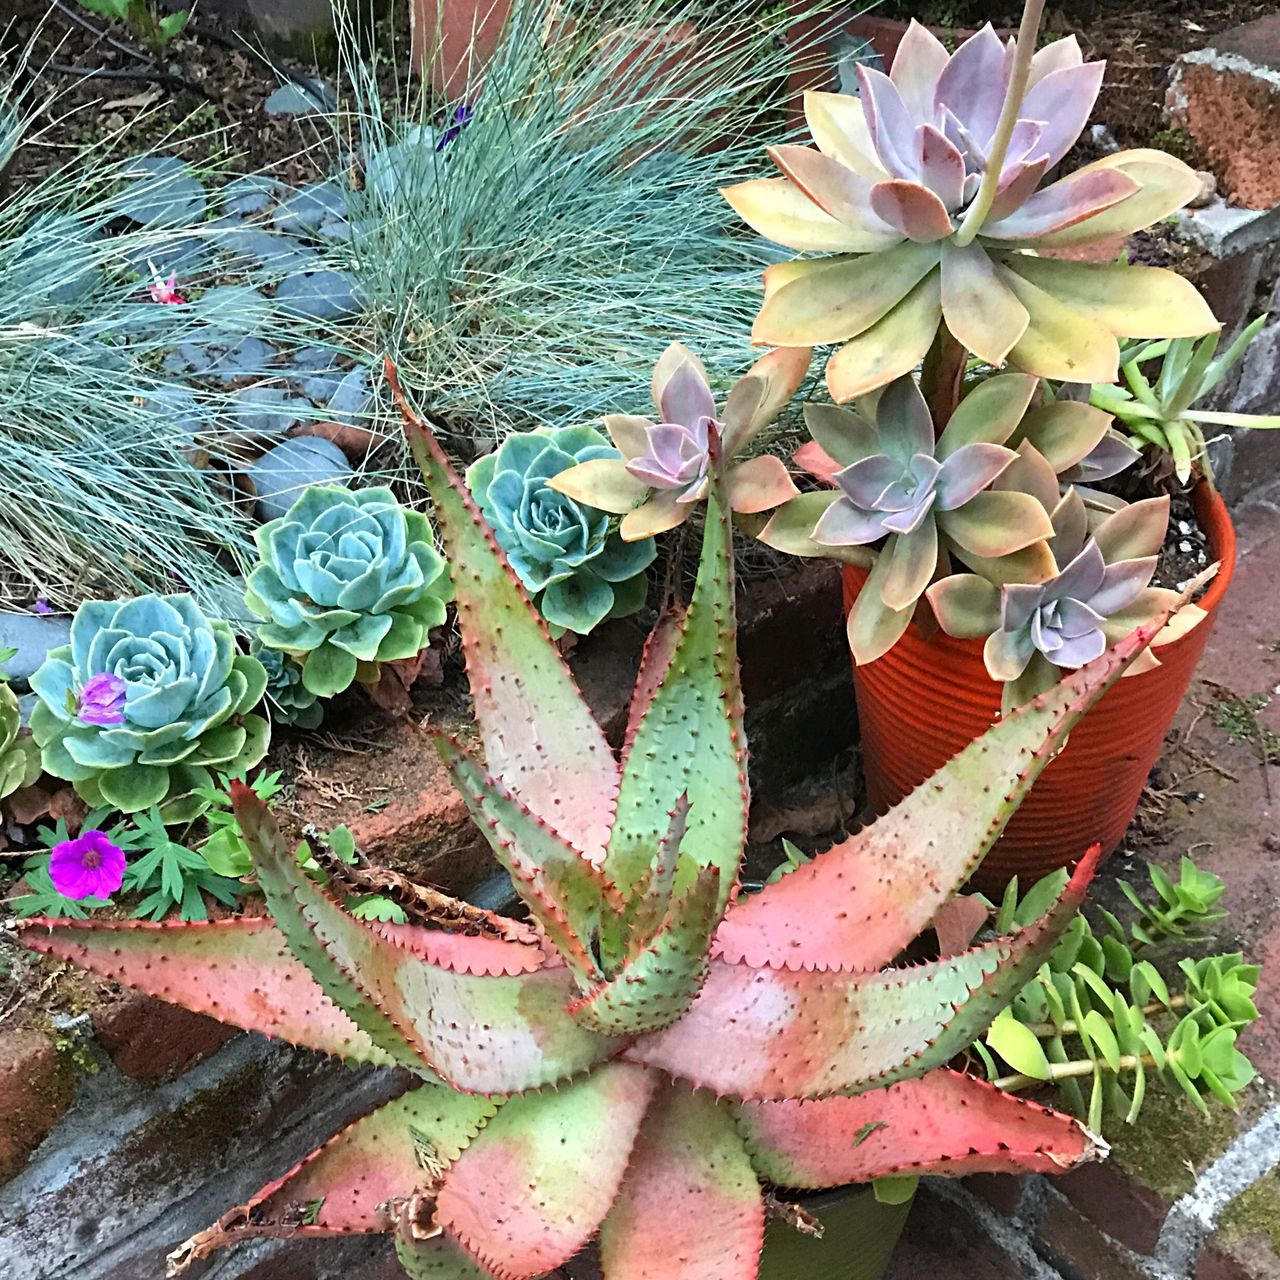 Growth Flower Plant Nature Cactus High Angle View Potted Plant Beauty In Nature No People Leaf Day Outdoors Green Color Close-up Fragility Prickly Pear Cactus Flower Head Freshness Aloe Succulents In My Garden Echeveria Crassula Open Edit